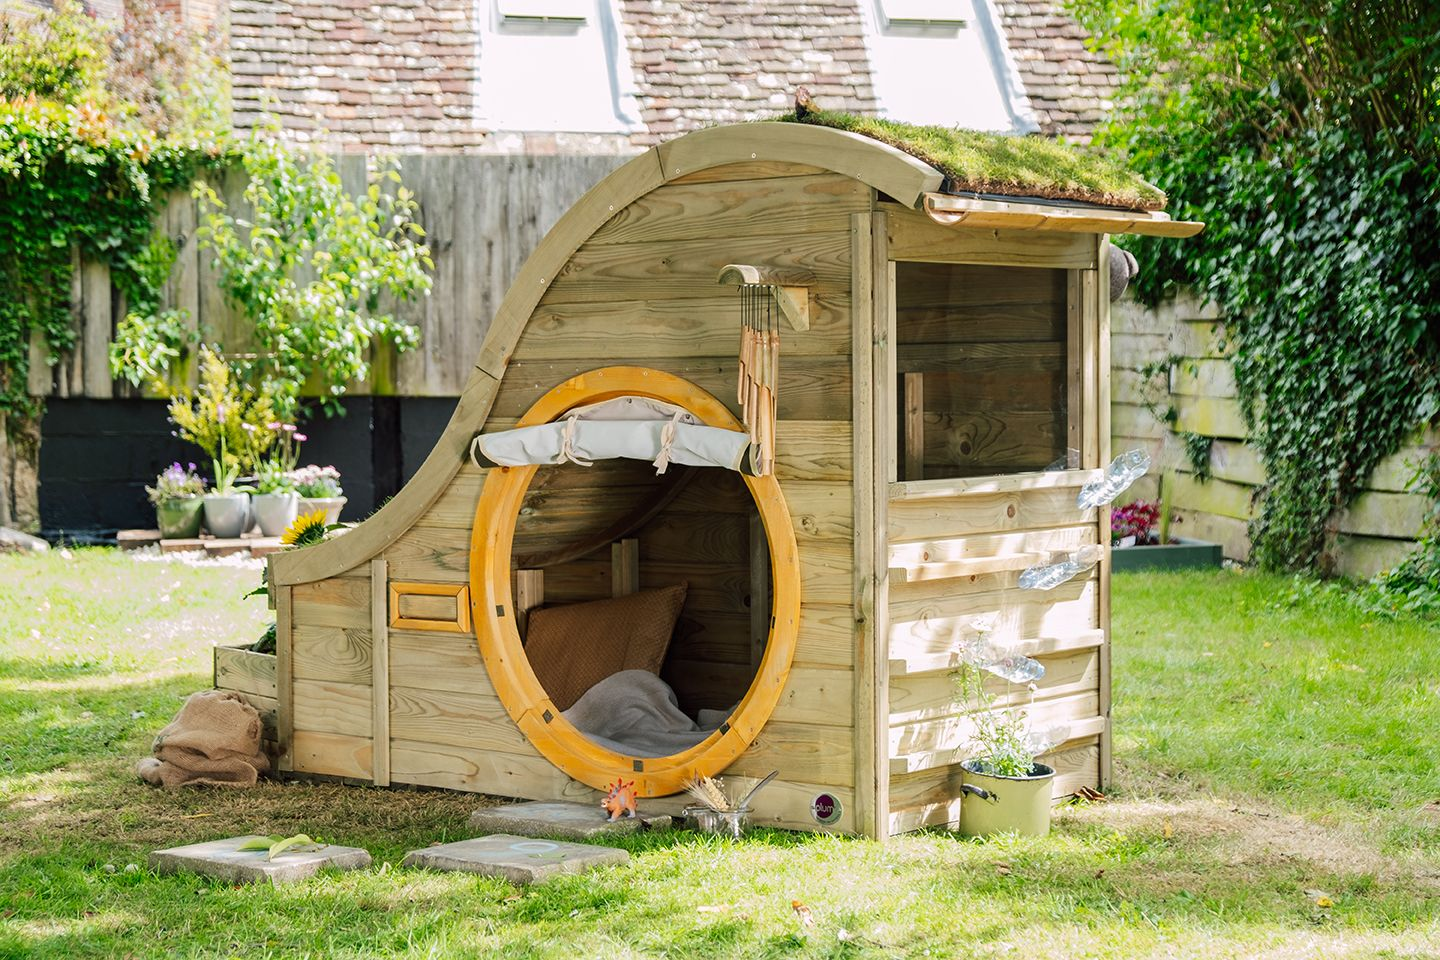 Plum Discovery Nature Play Hideaway Spielhaus